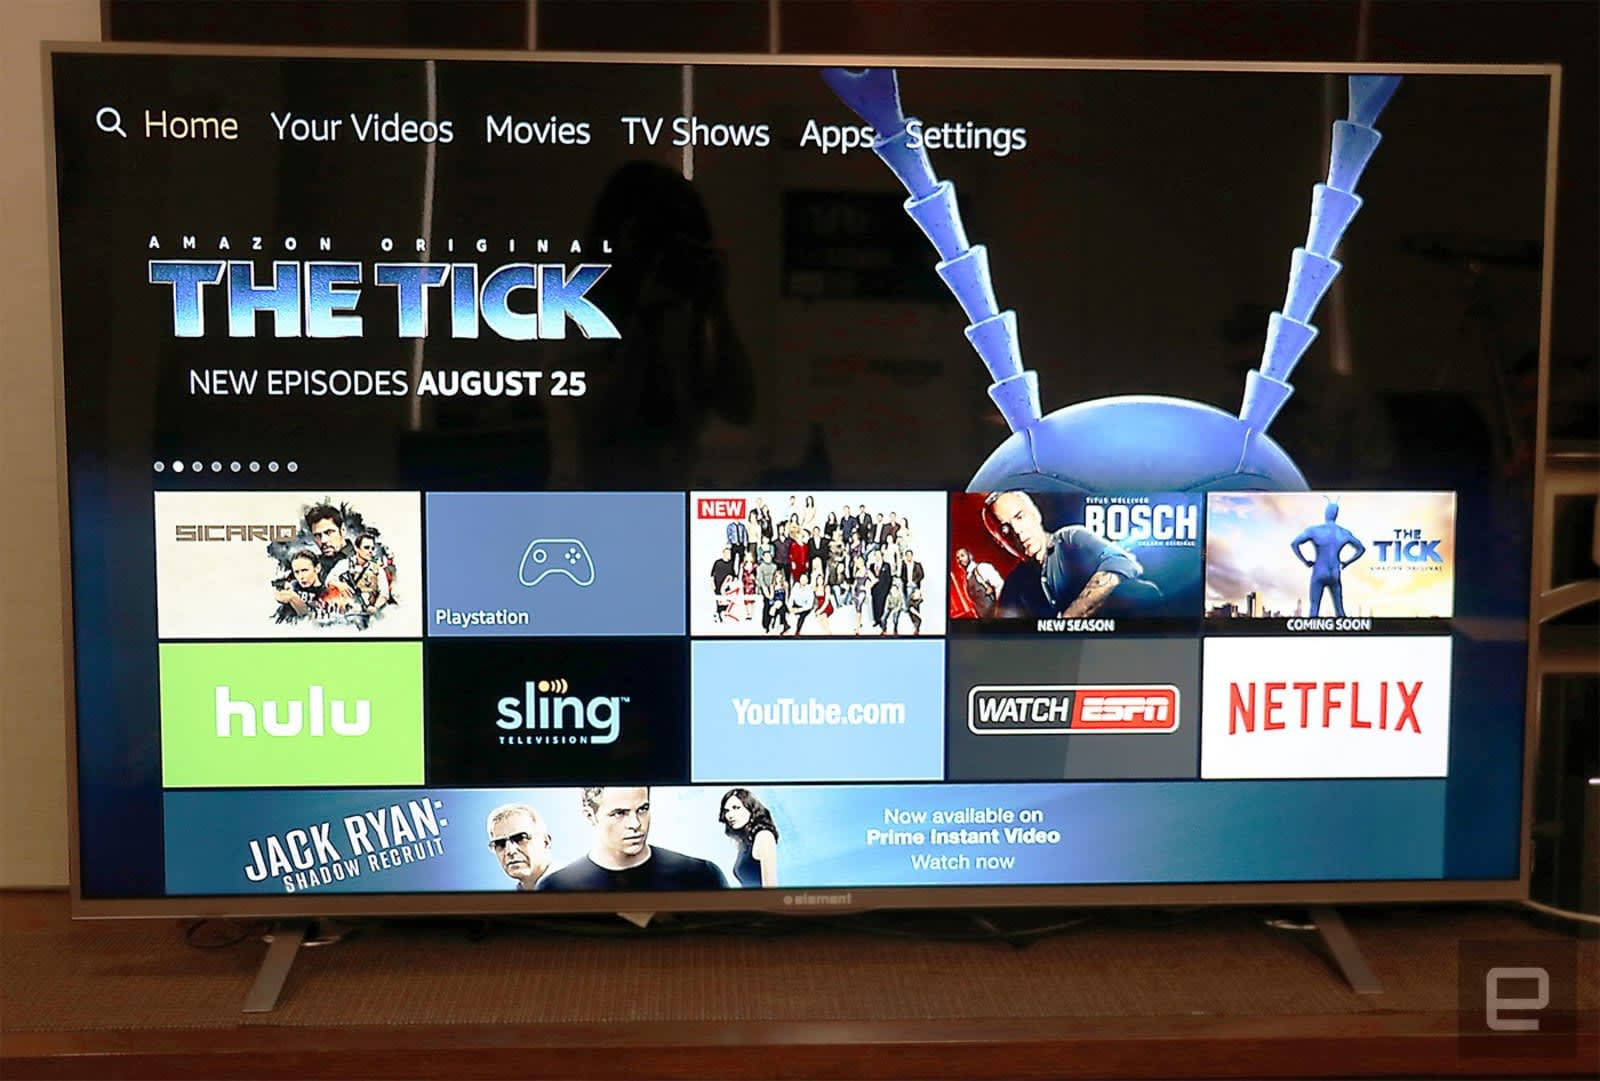 Control Hulu with your voice on Amazon's Fire TV devices